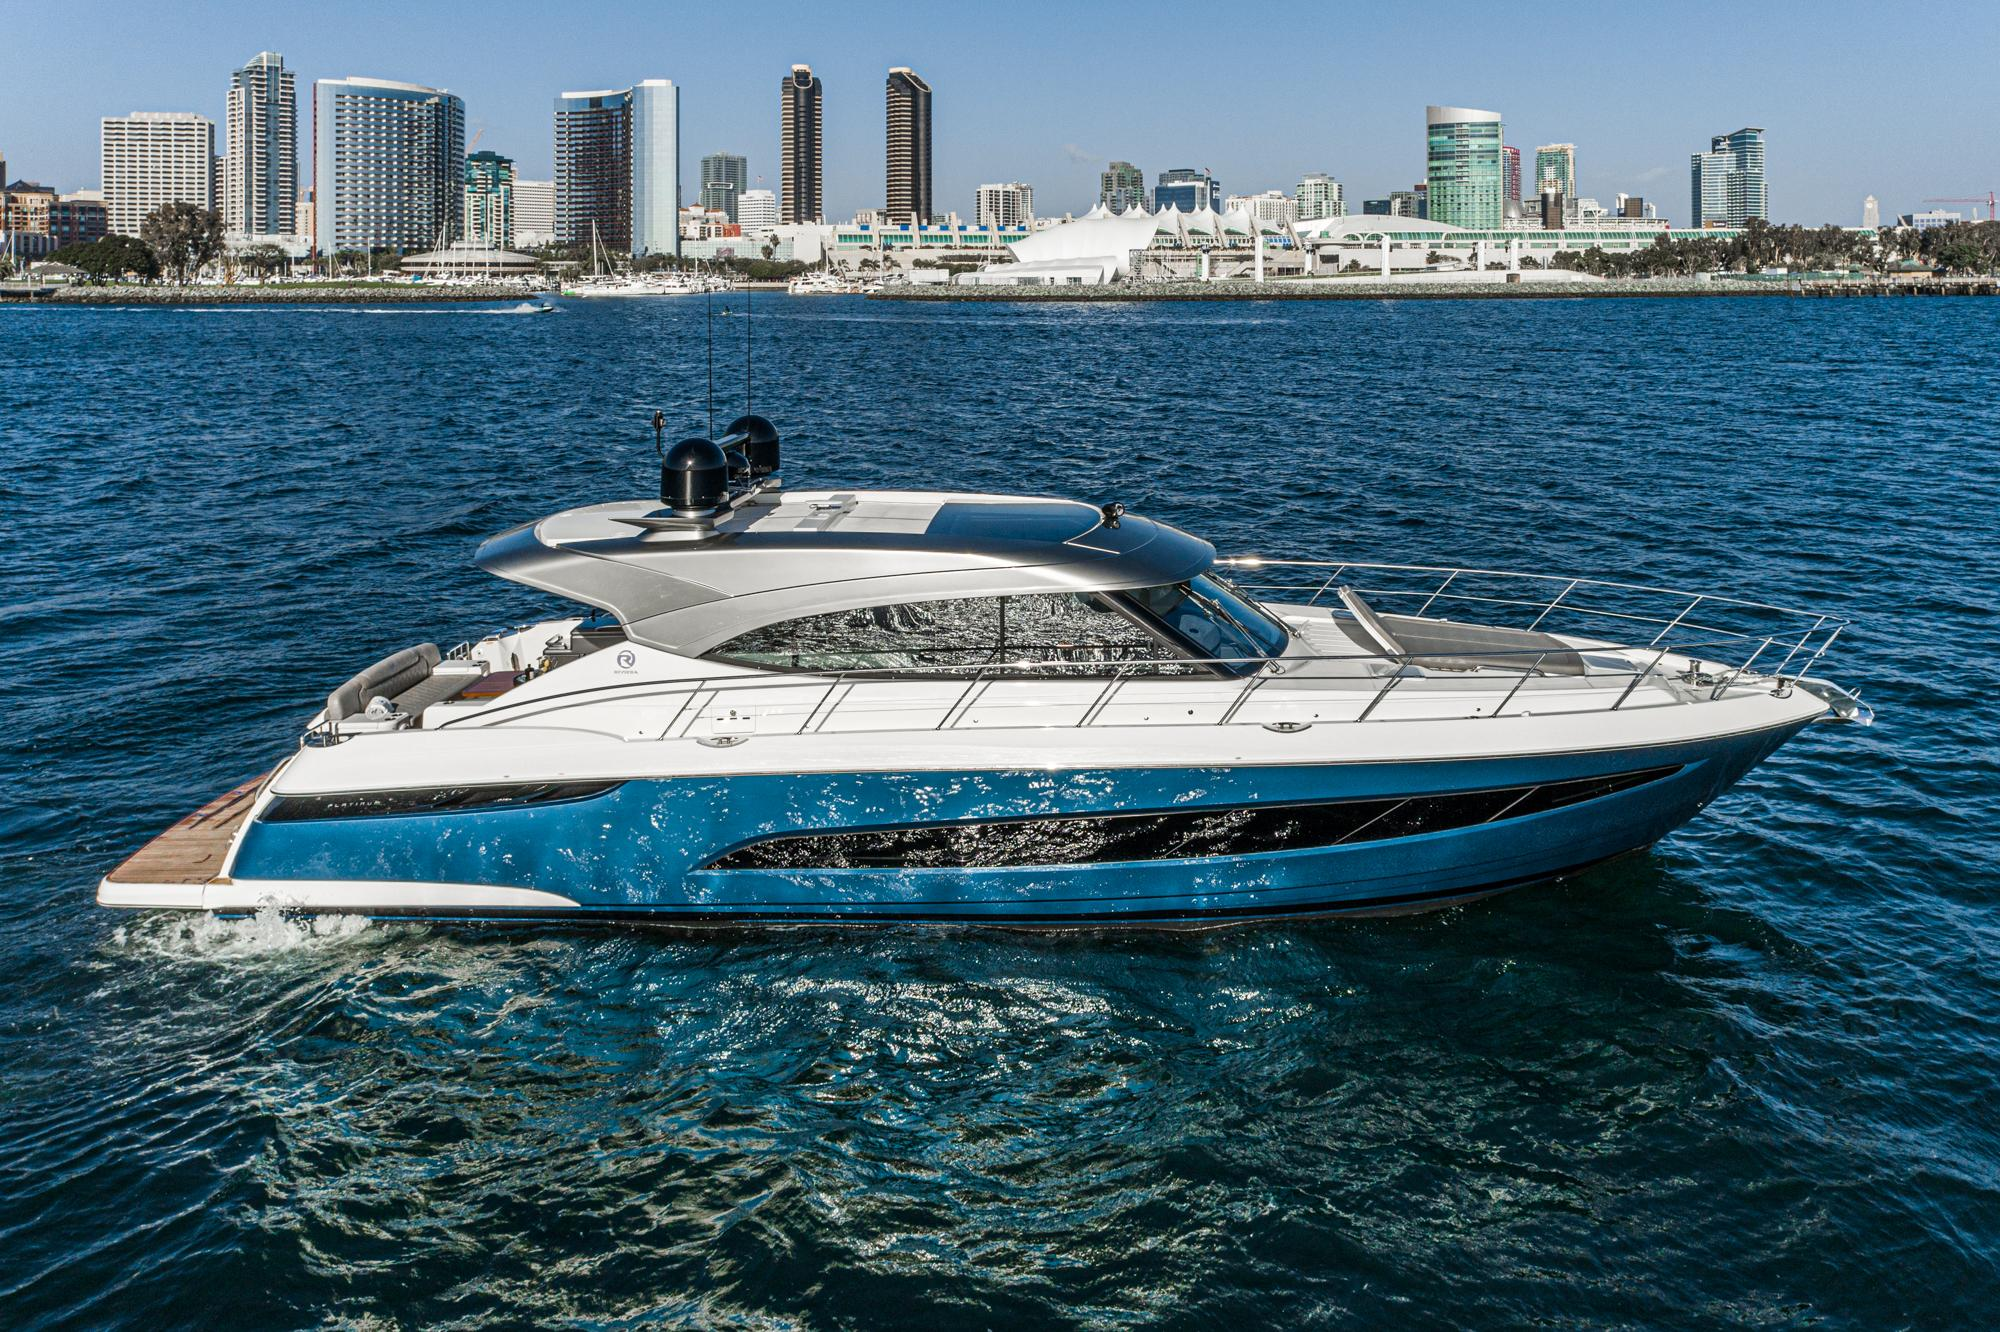 2021 Riviera 5400 Sport Yacht #R101 inventory image at Sun Country Coastal in Newport Beach